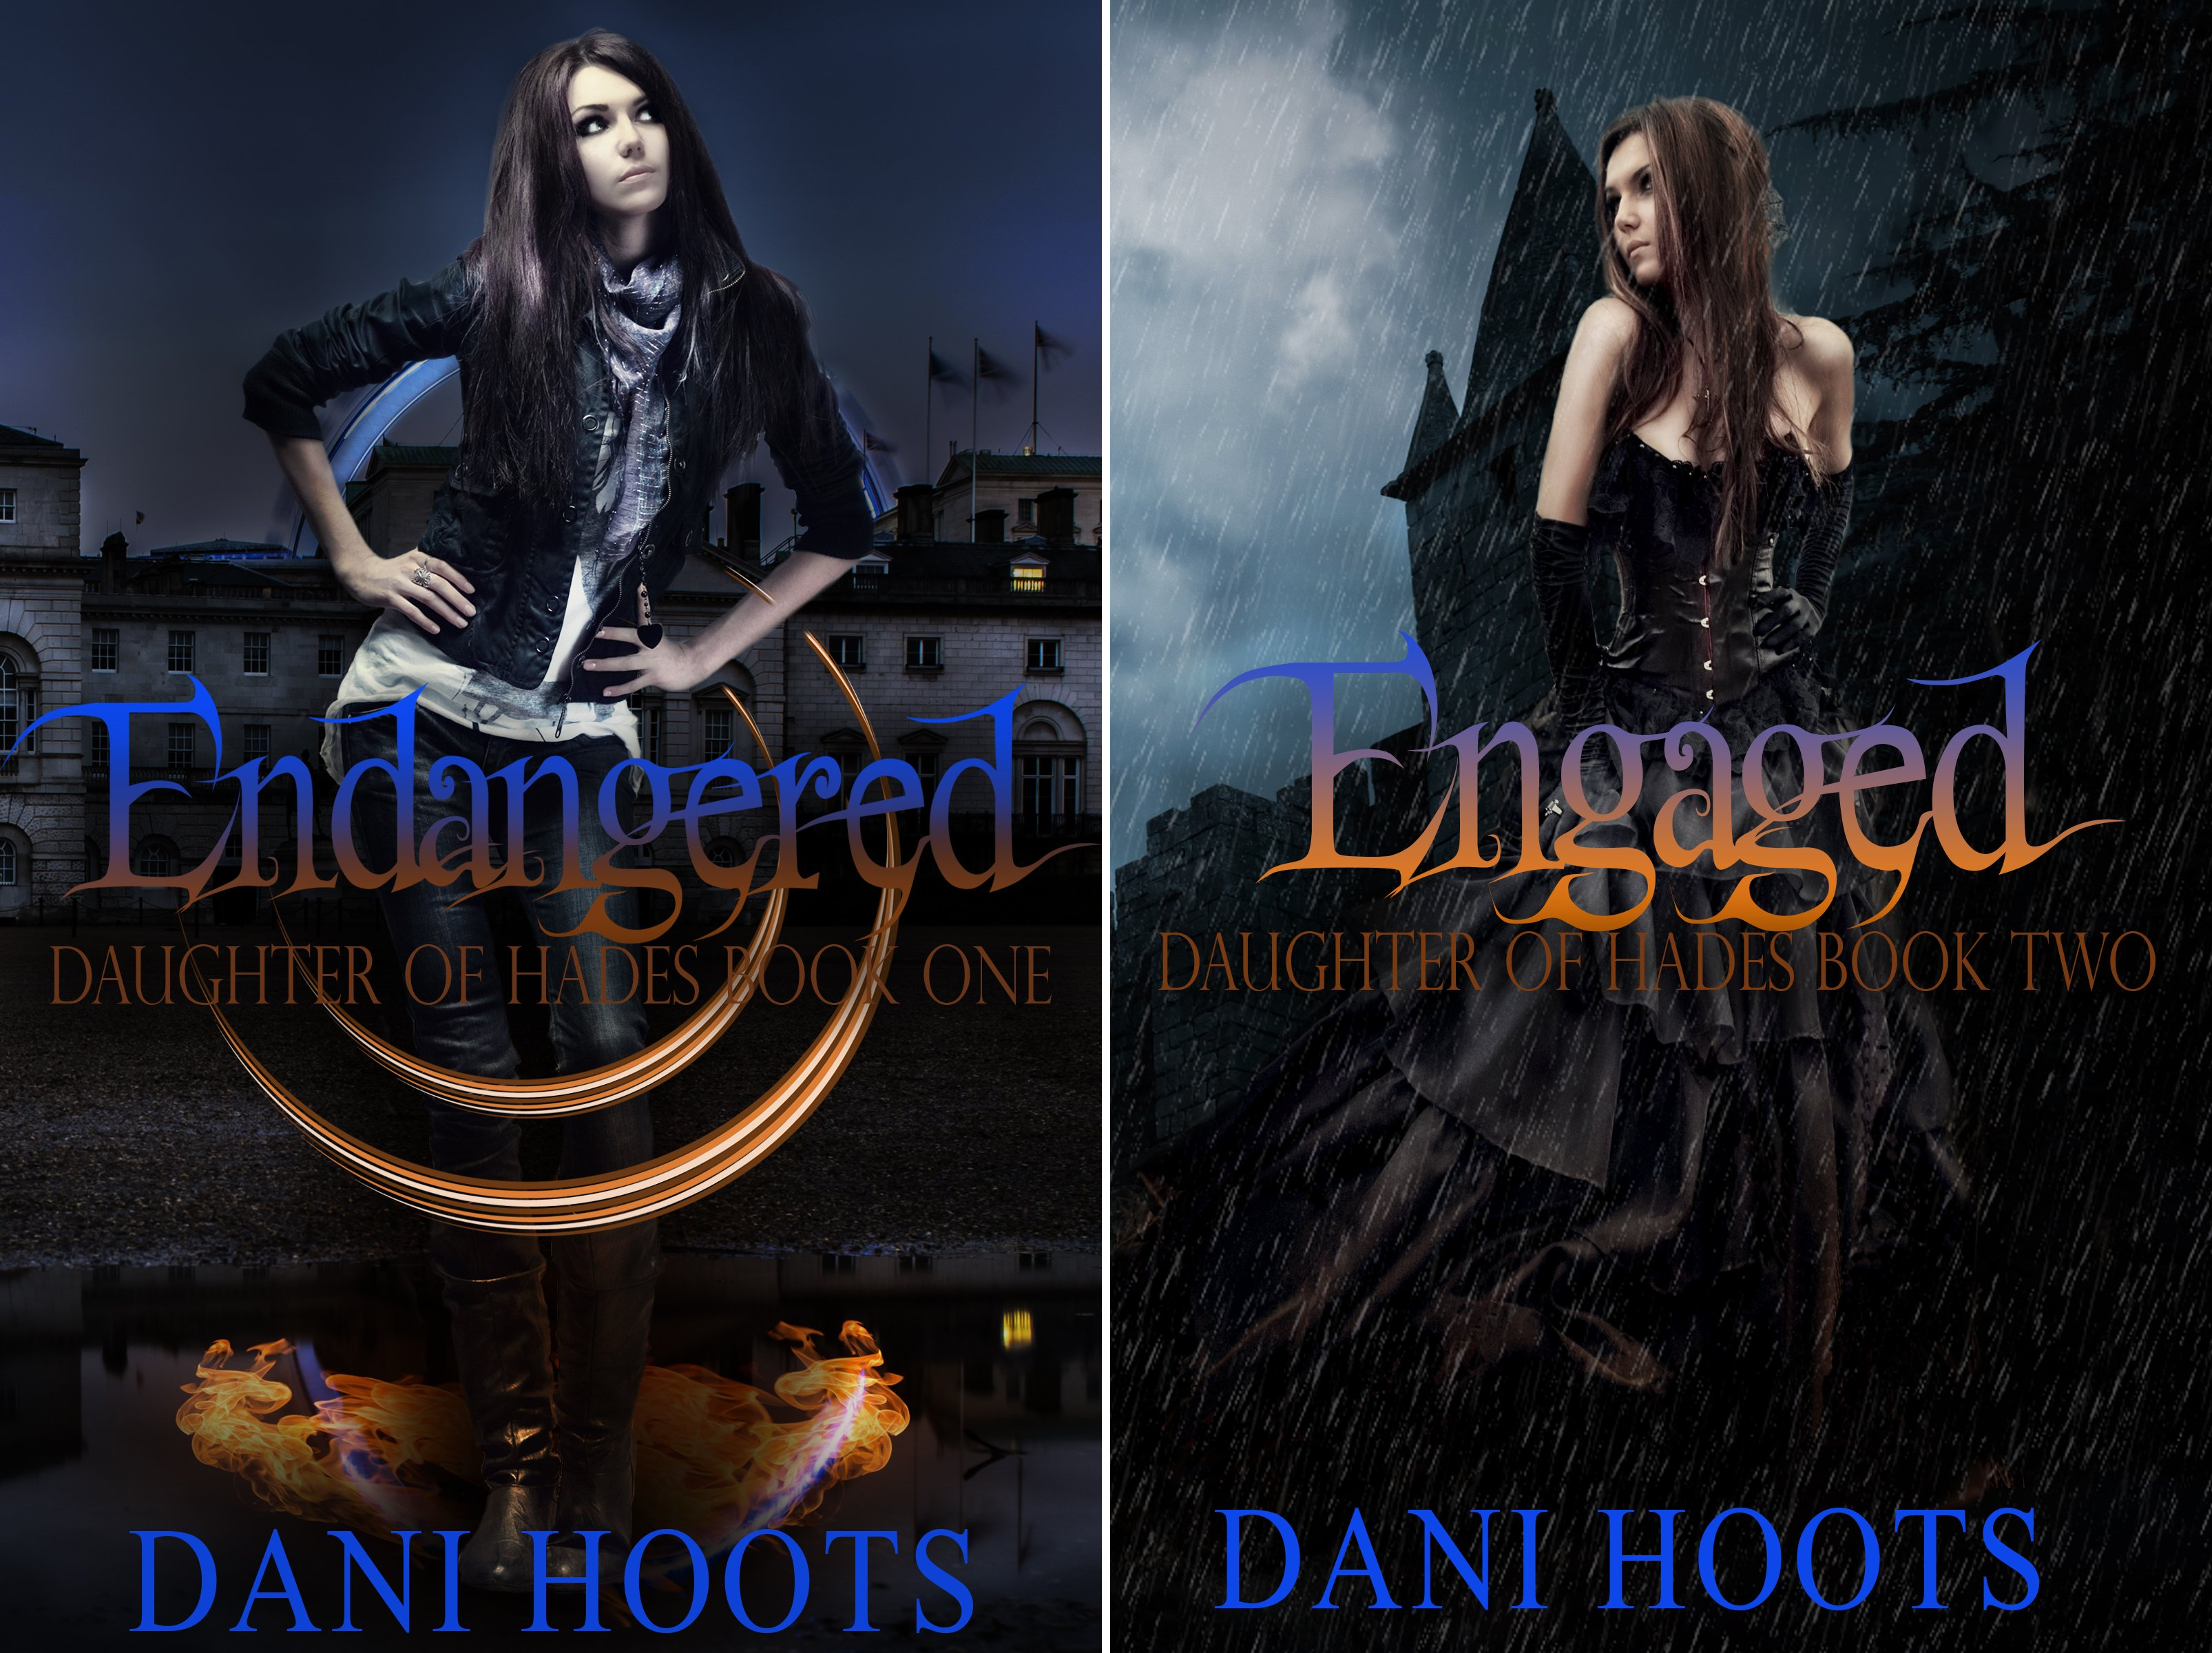 Daughter of Hades (2 Book Series)